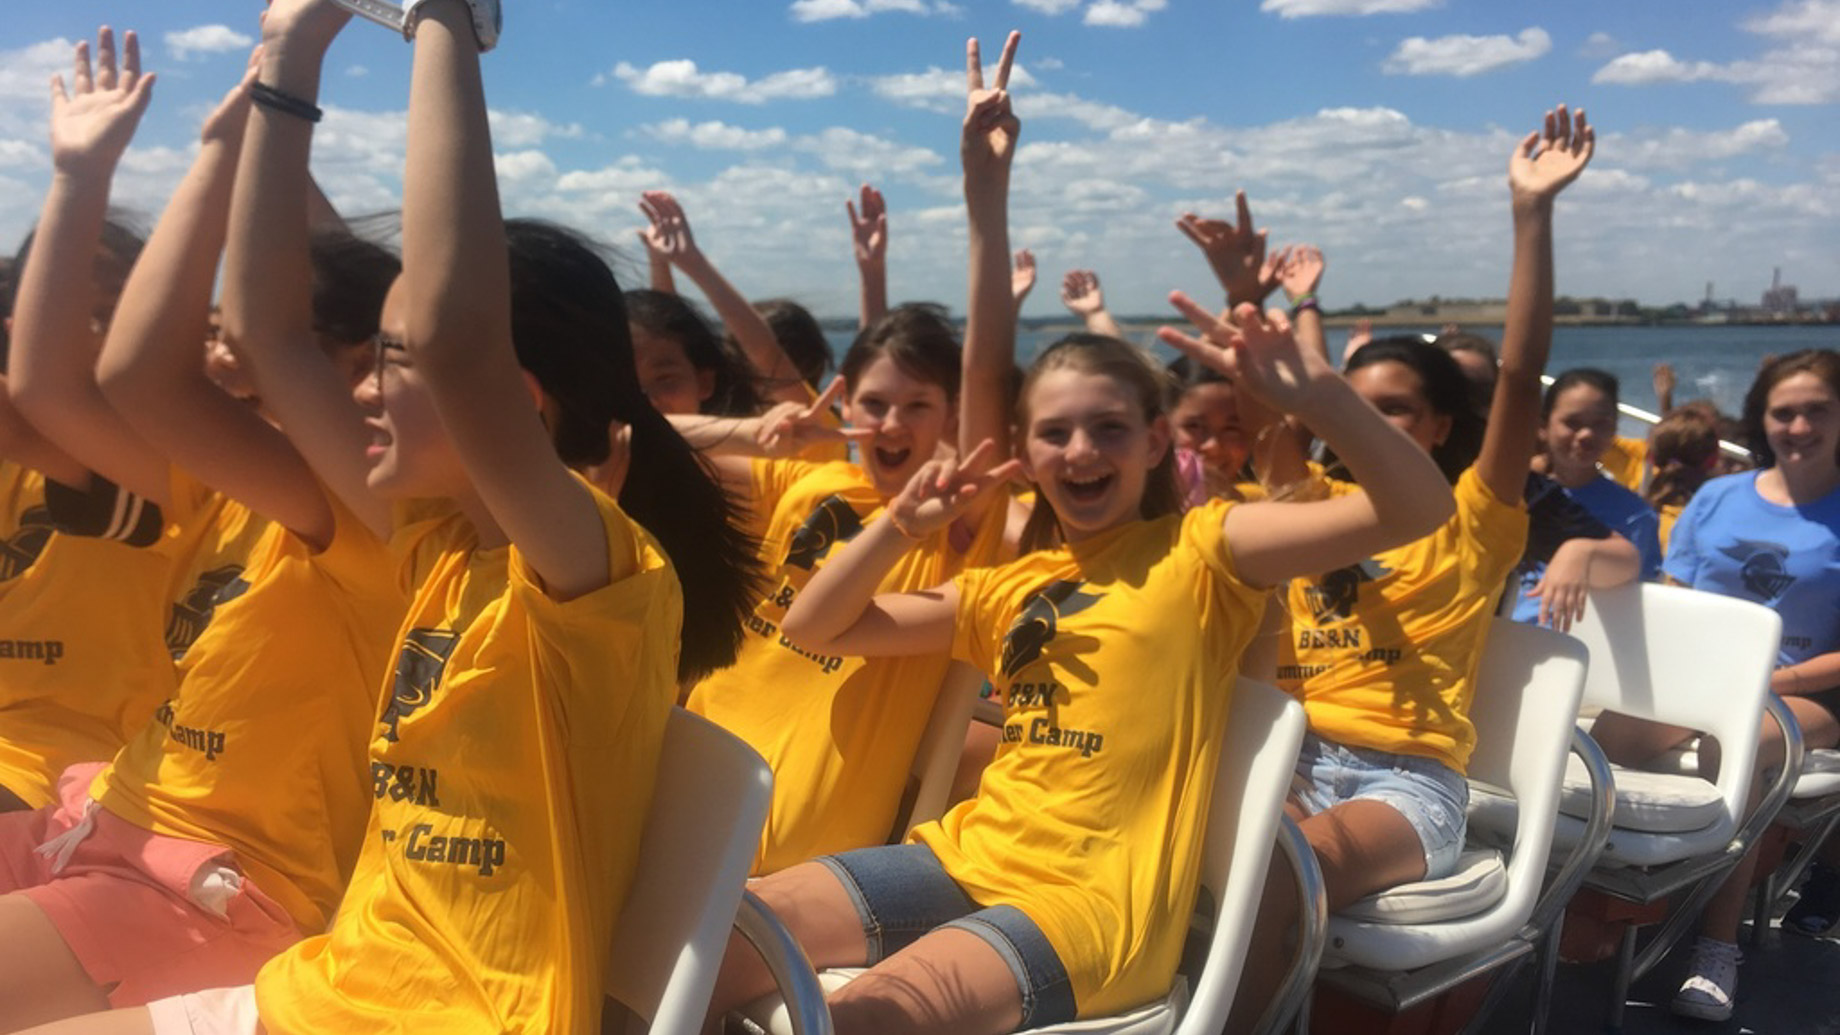 summer campers on boat trip with arms in the air